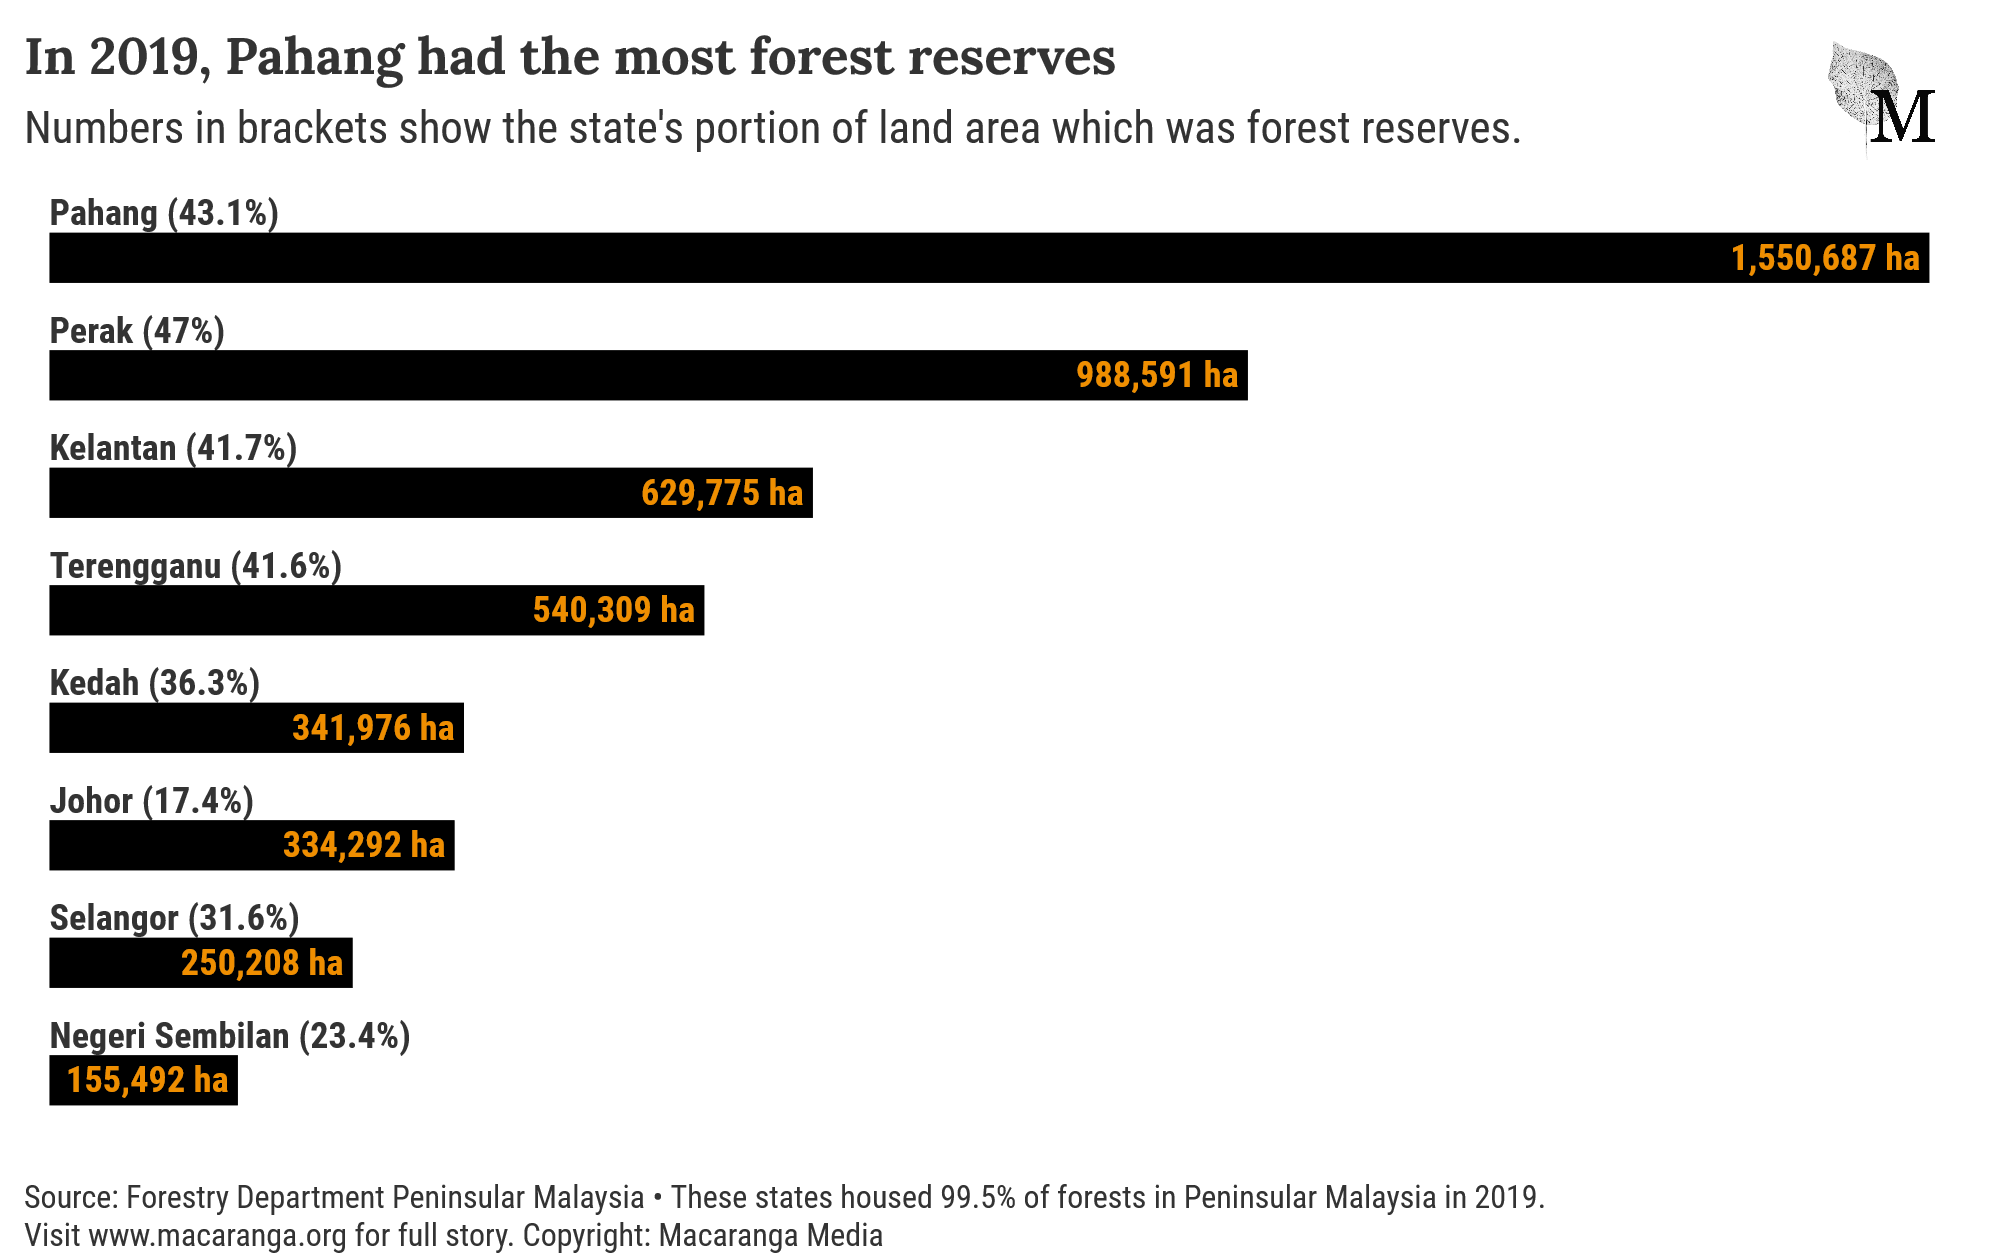 A chart showing area of permanent forest reserves in states in Peninsular Malaysia, 2019. Pahang topped the chart.